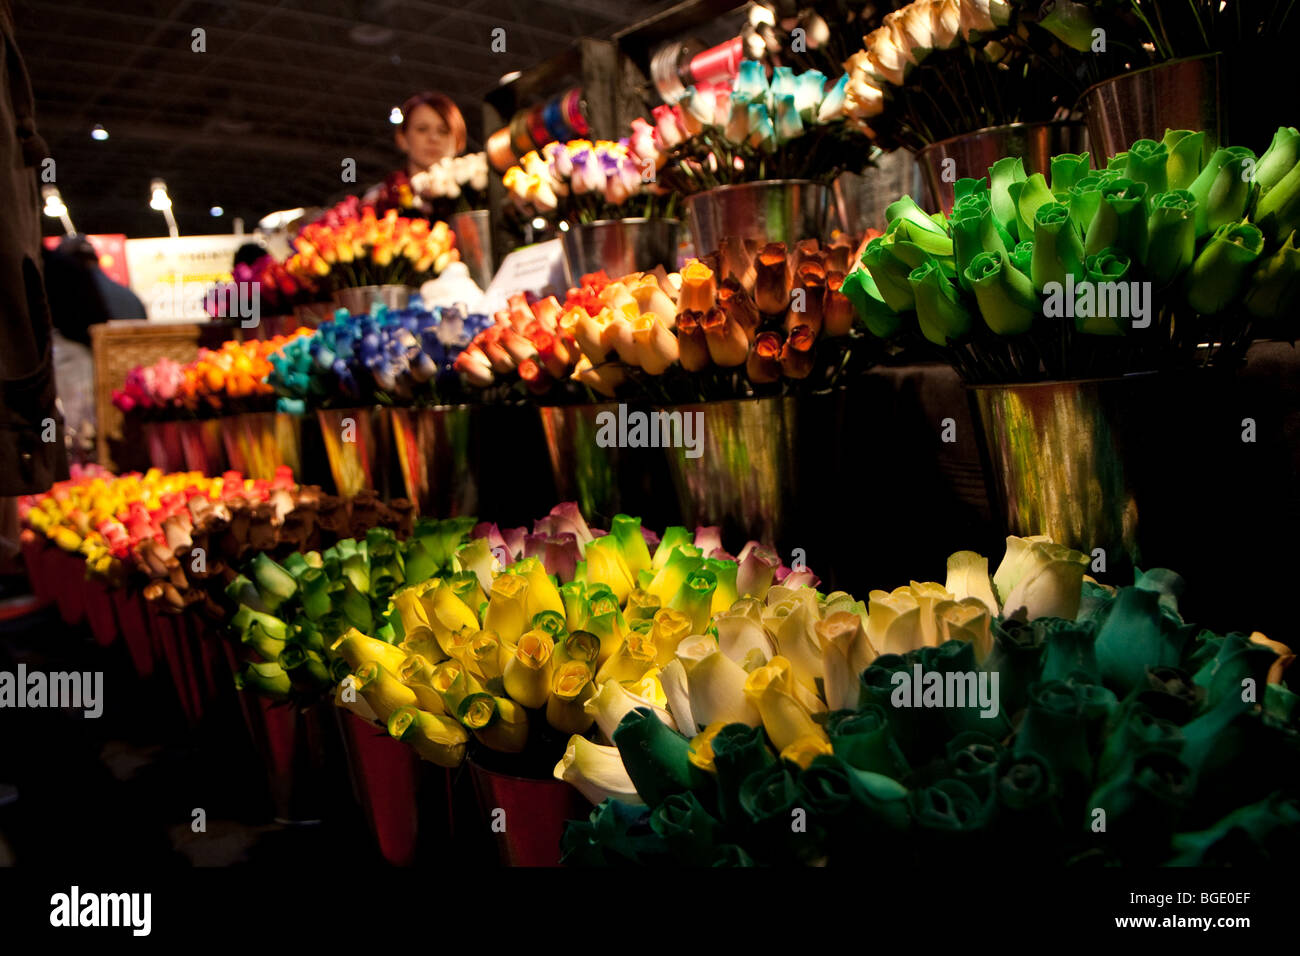 Wooden roses flowers of different colors red, orange, pink, green, purple, blue, lime - Stock Image